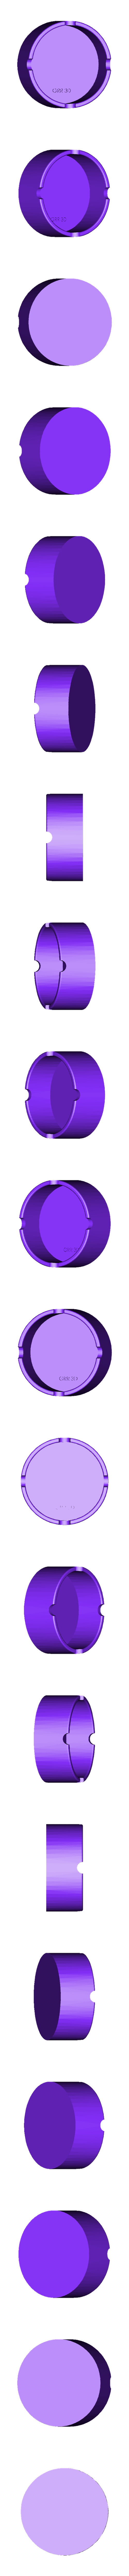 cenicero2.STL Download free STL file V2 ashtray • 3D printing template, conagrr